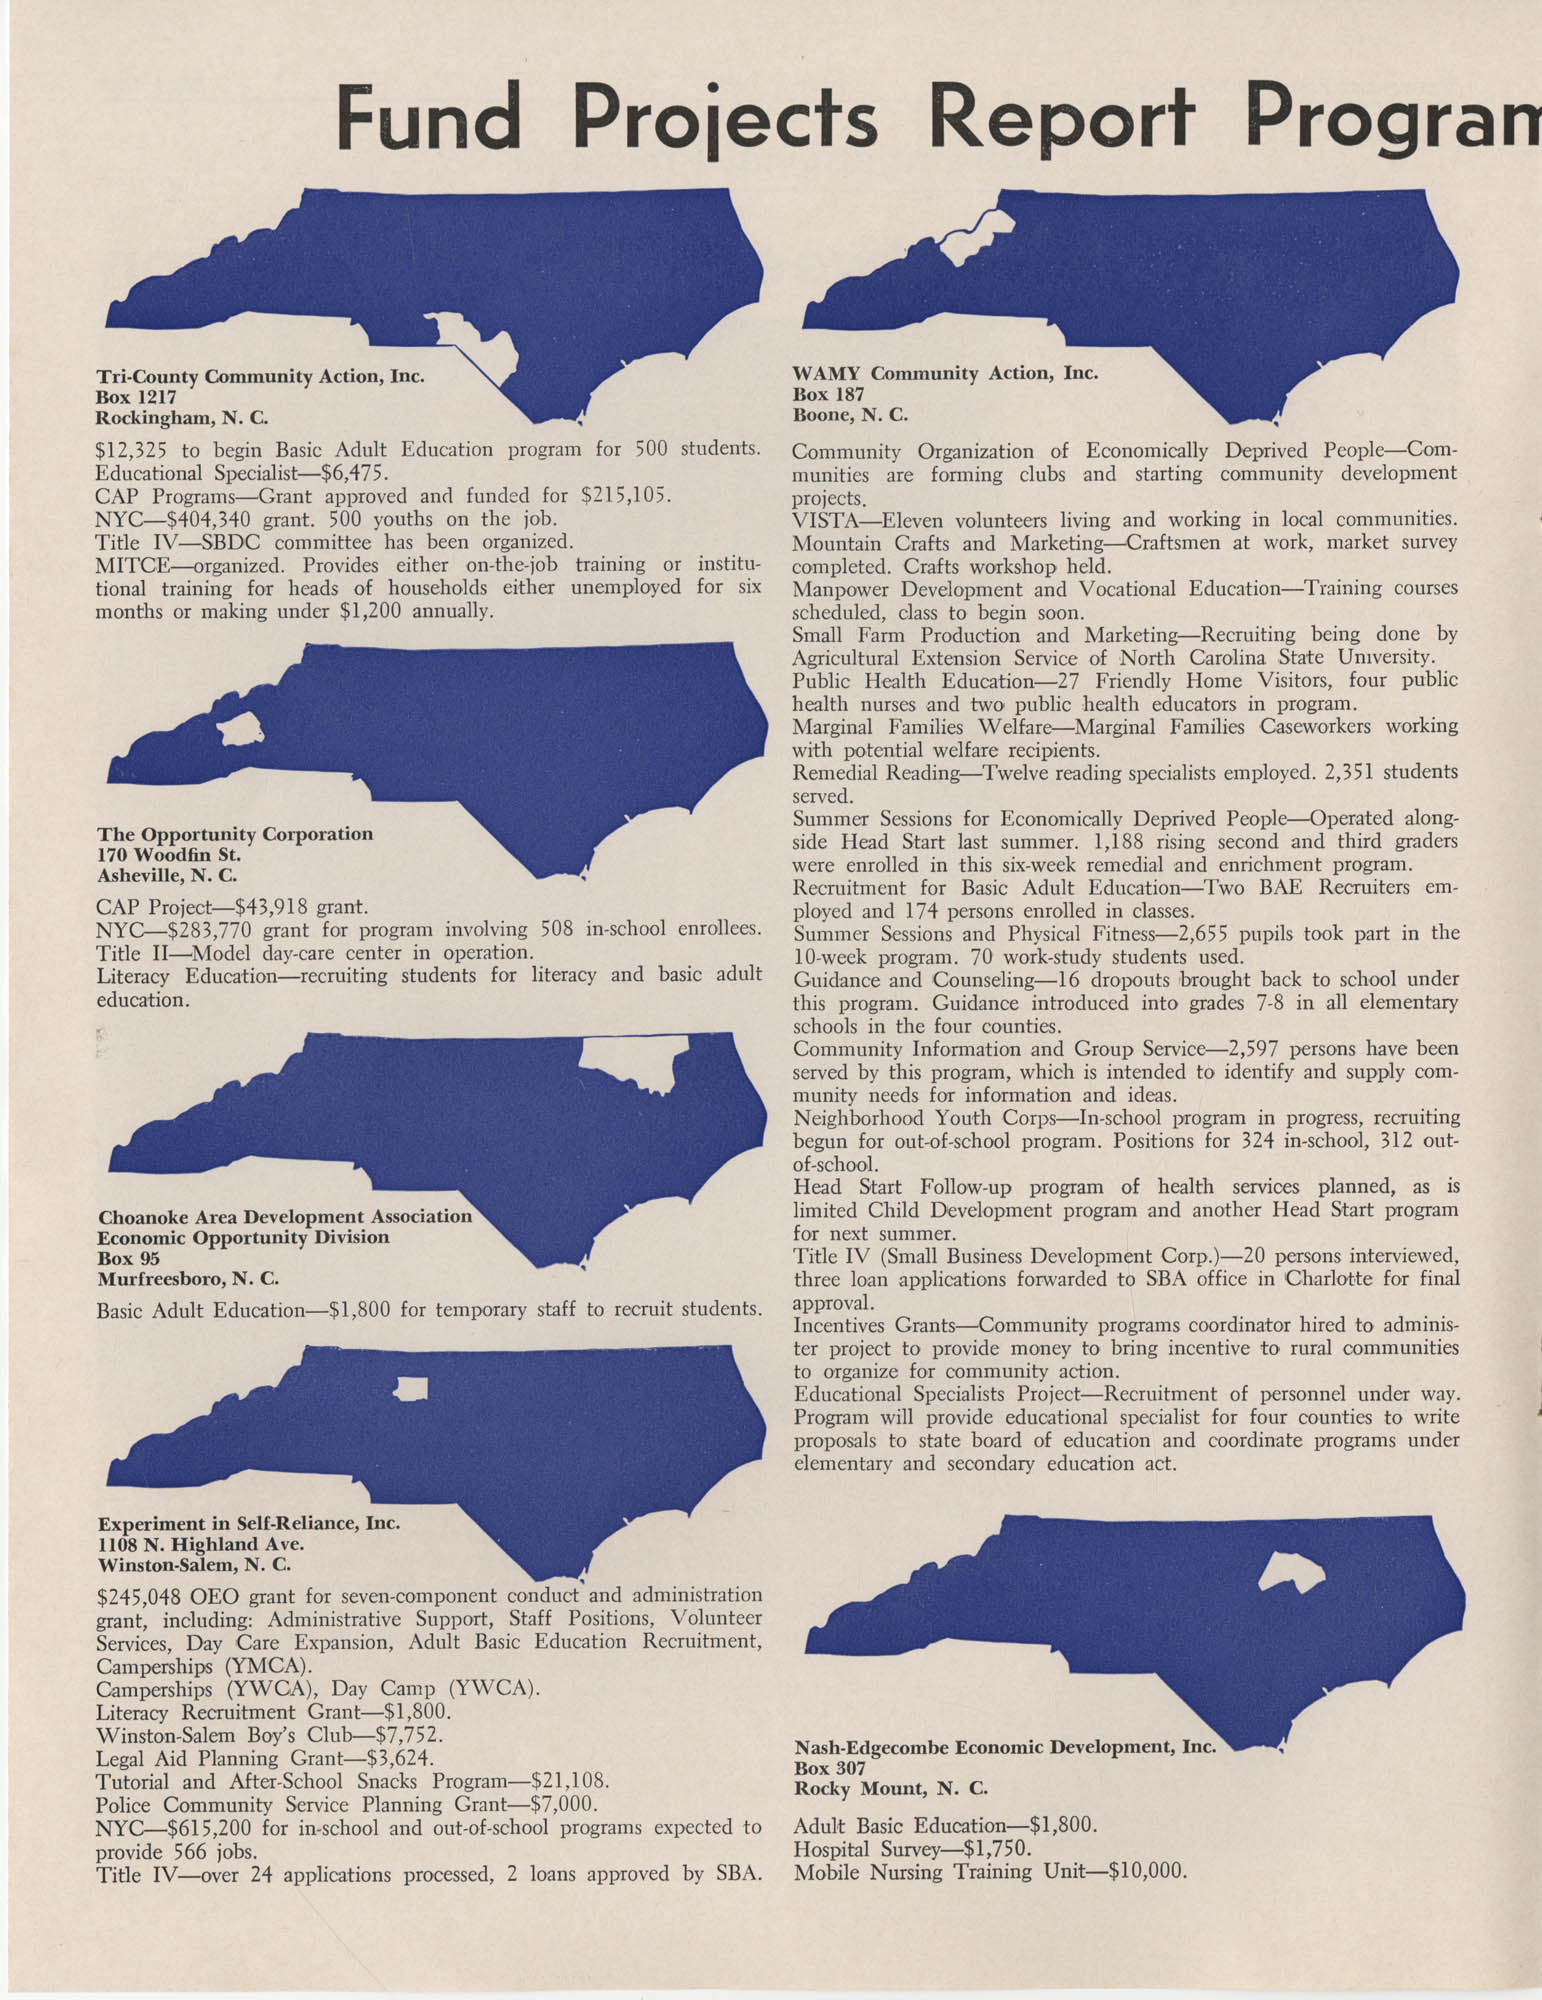 Blueprint for Opportunity, Vol. 2, No. 1, Page 10